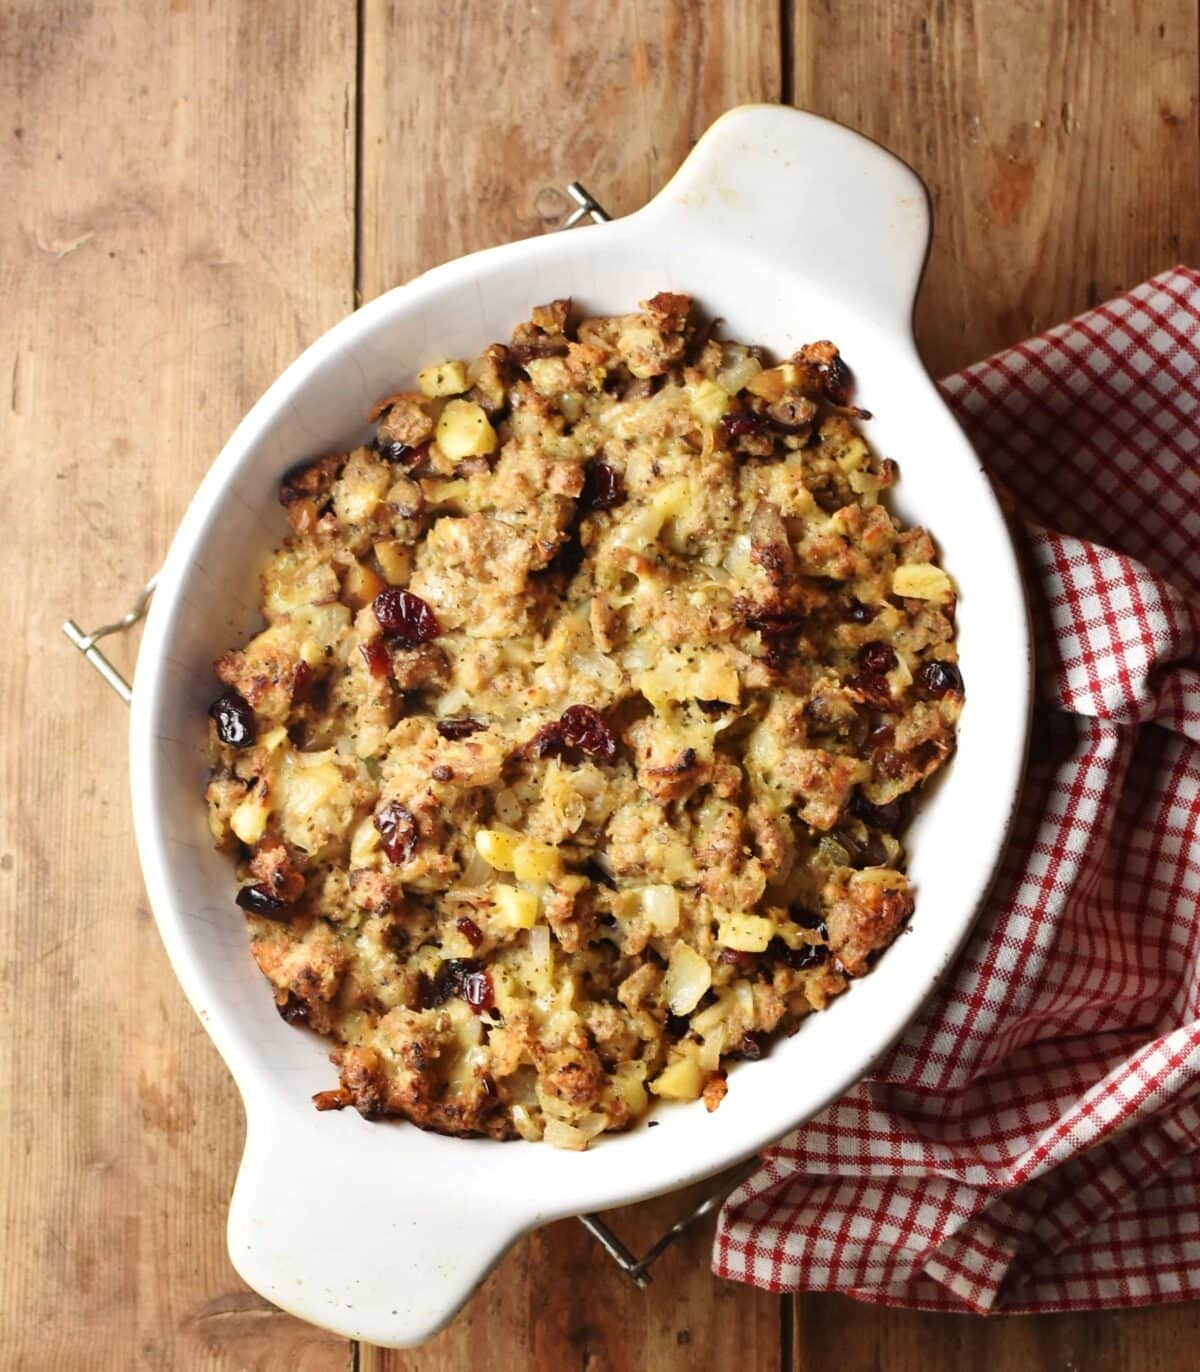 Top down view of baked vegetarian stuffing in white oval dish with red-and-white checkered cloth to the right.